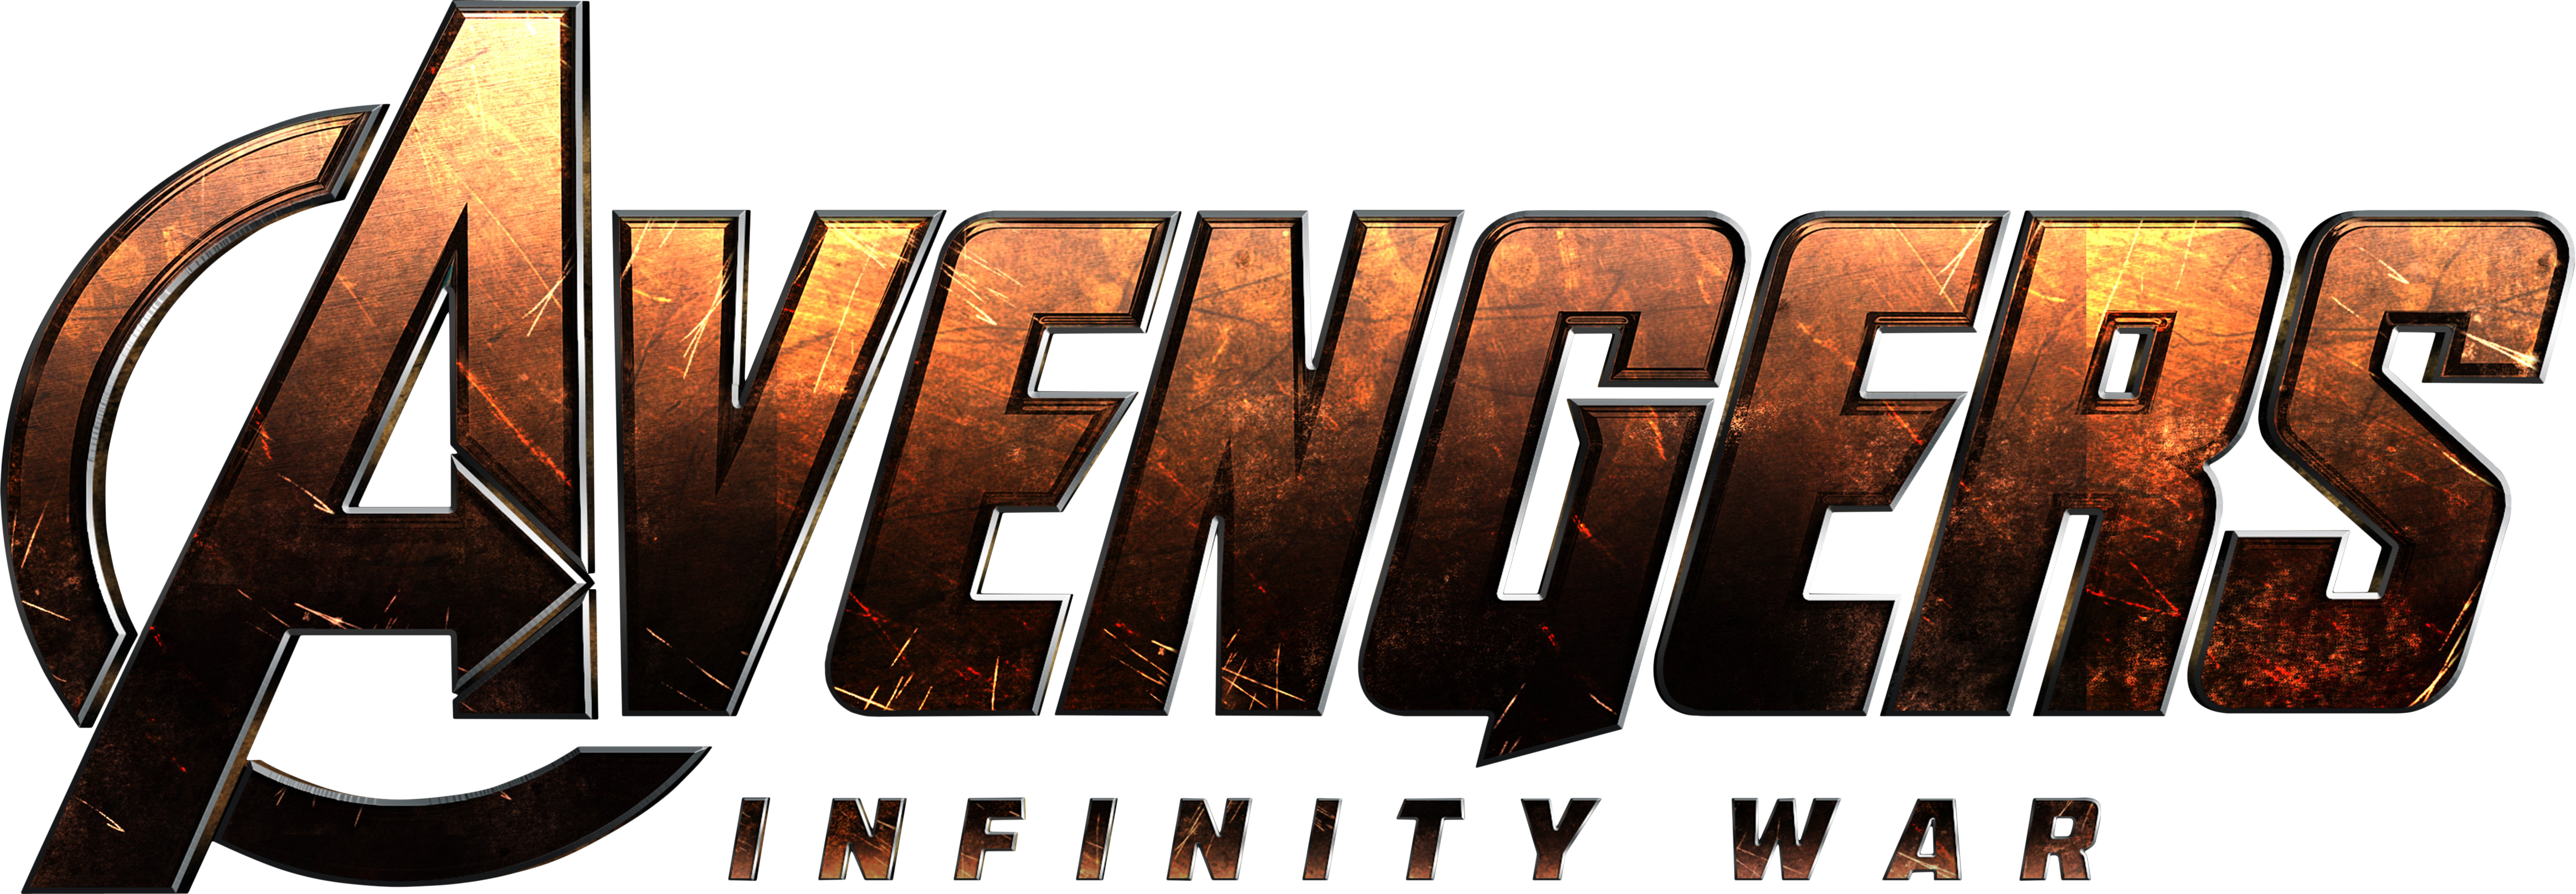 Avengers Infinity War Logo Png 4650x1613 By Sachso74 On Deviantart